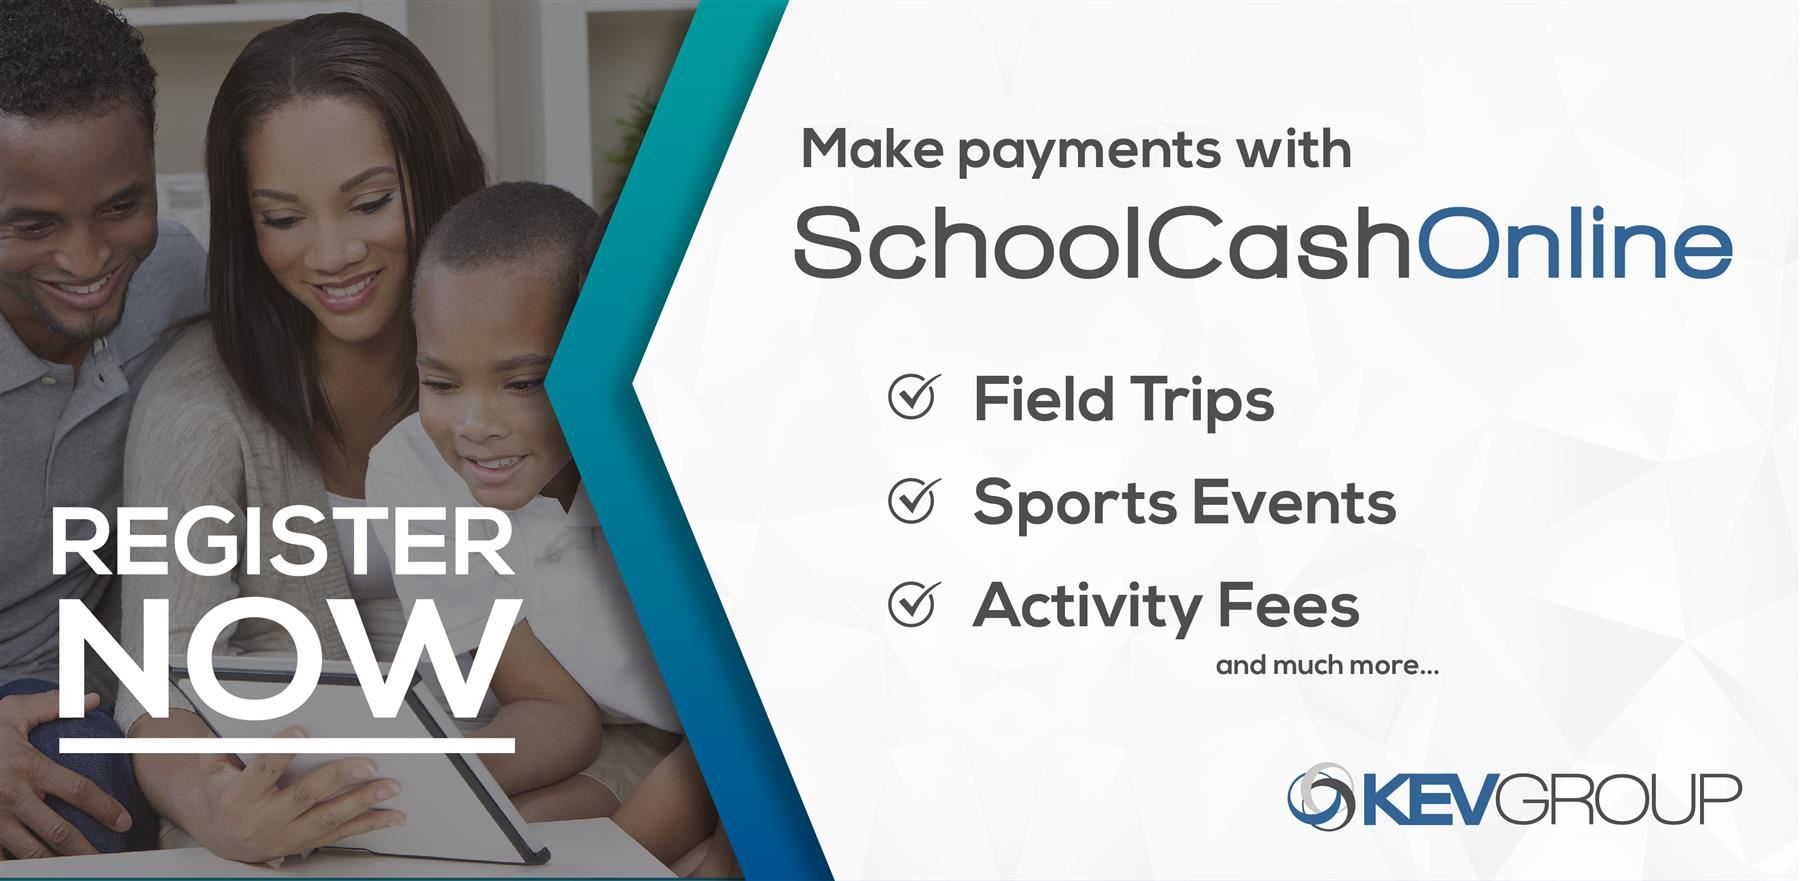 Make payments with SchoolCash Online!